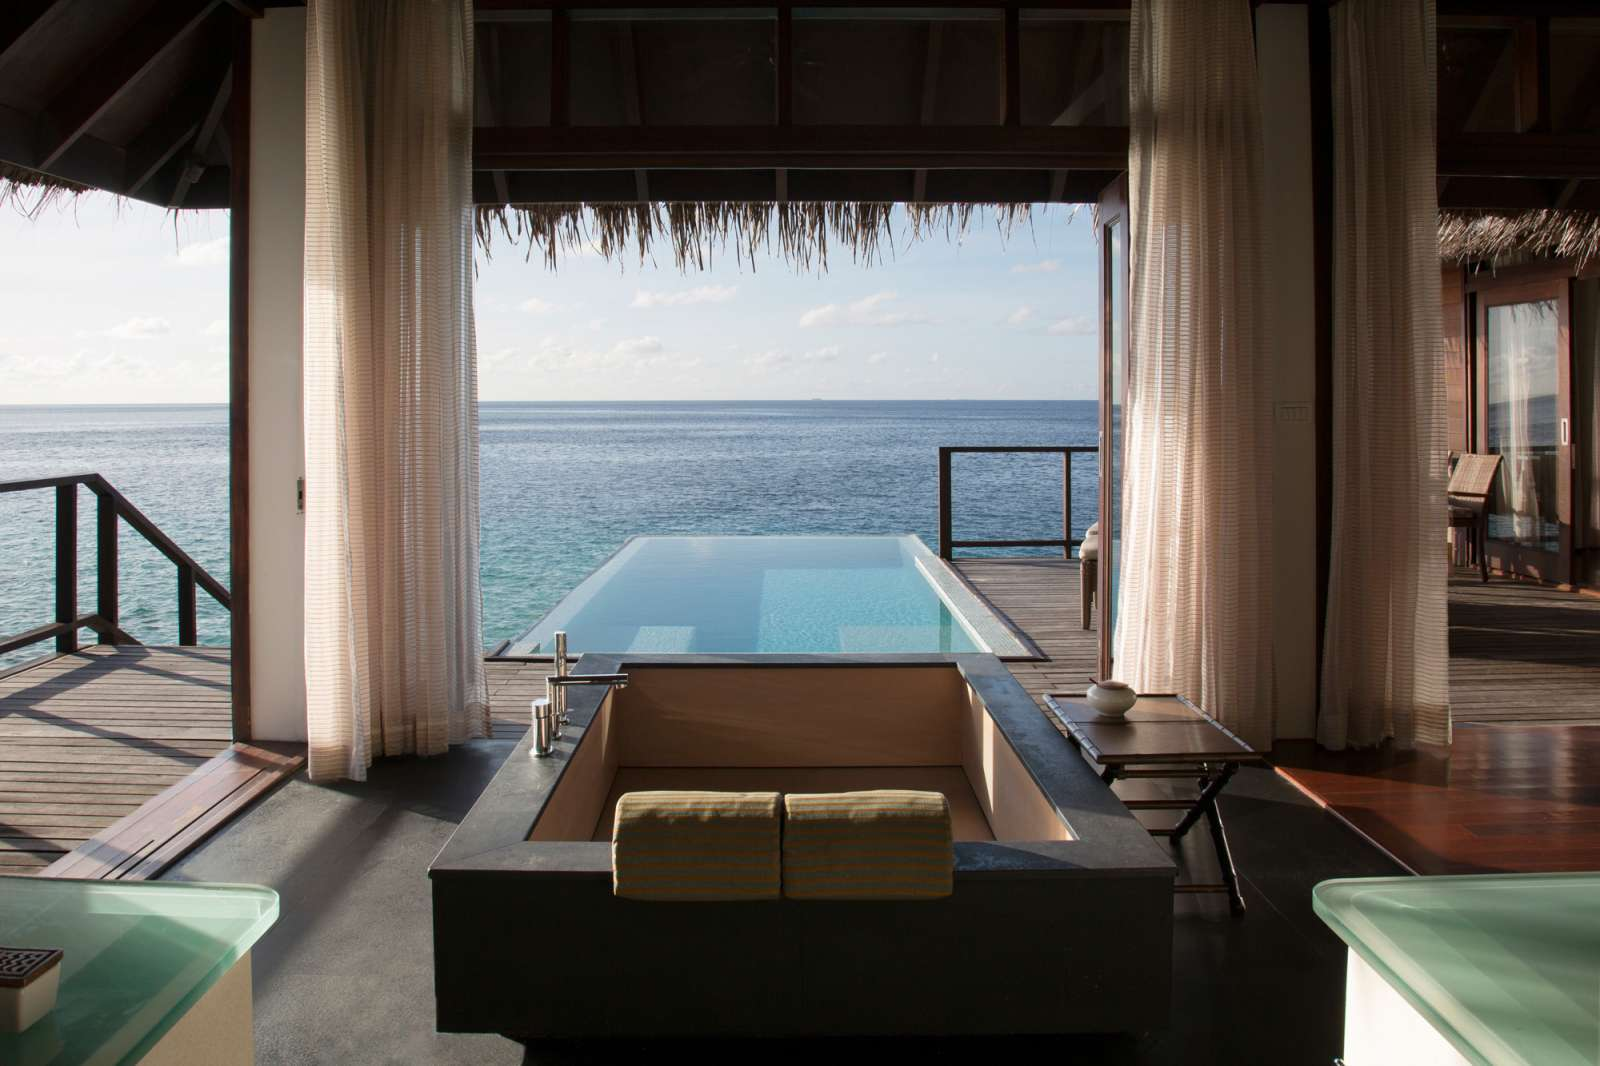 Maldives villa with a soaking tub and infinity pool overlooking the ocean